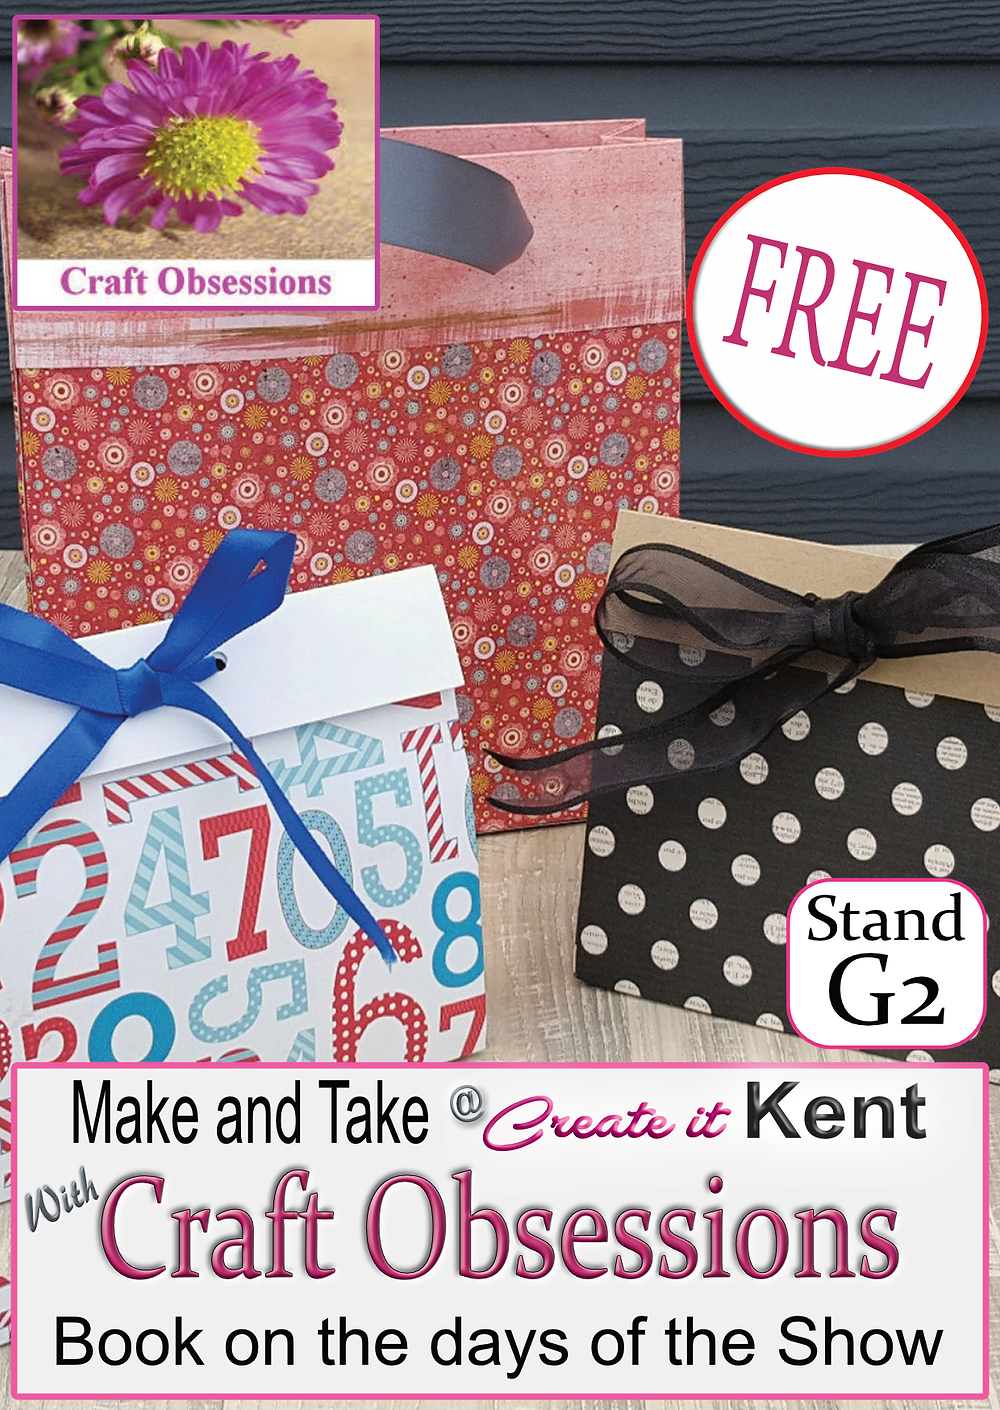 Craft Obsessions make and take at Create it Kent